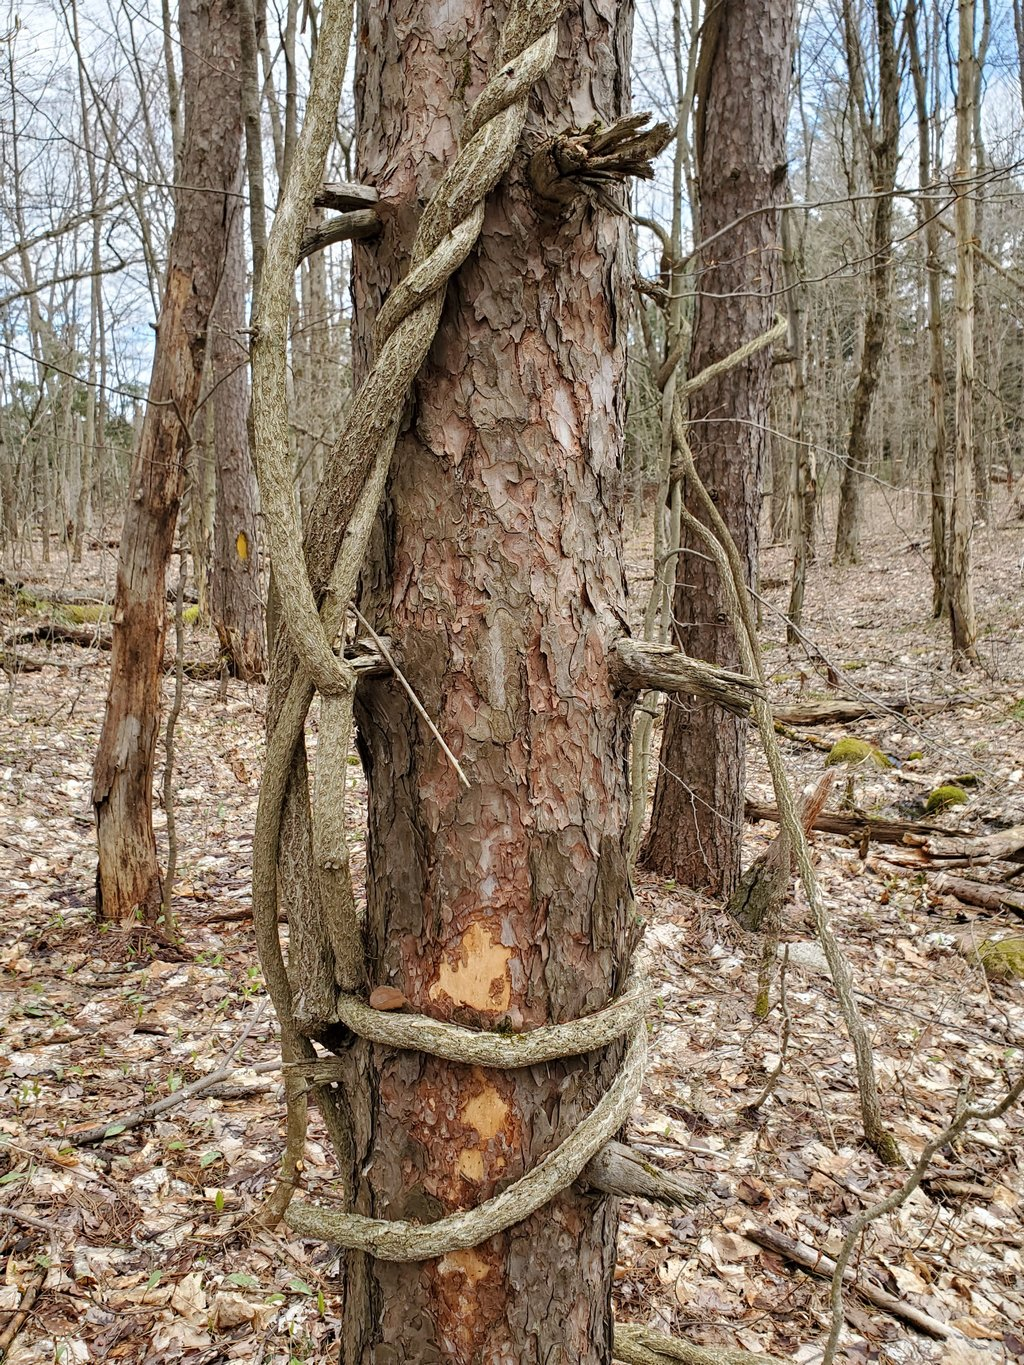 Huge vines on tree, new trail section (Blue Trail)